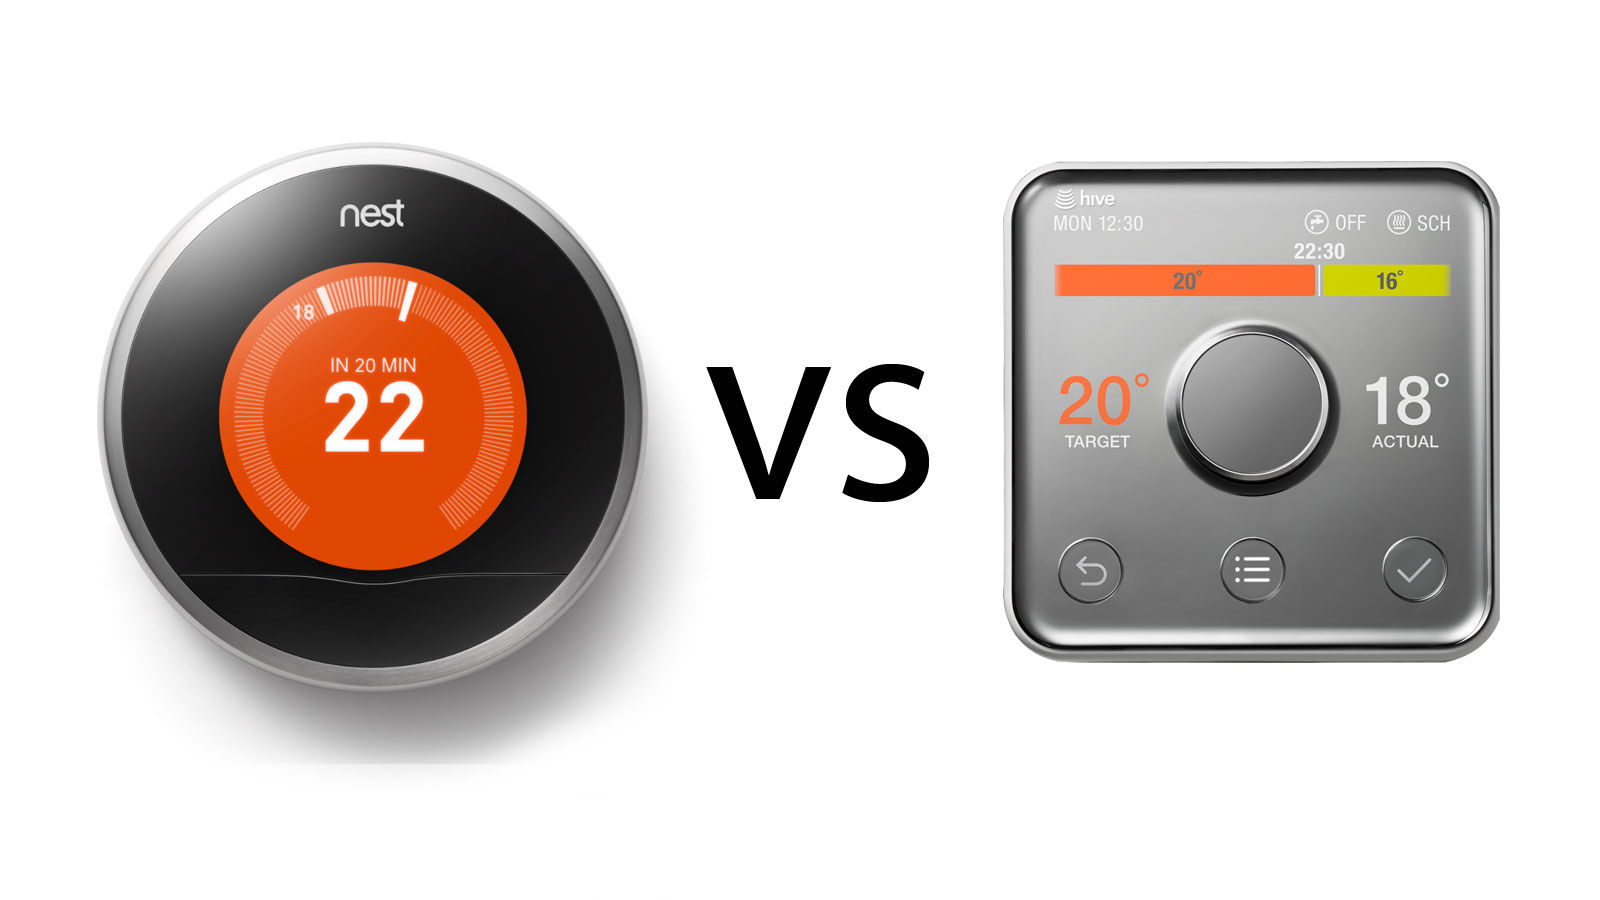 Nest vs hive which is the best smart thermostat gearopen - Nest thermostat stylish home temperature control ...